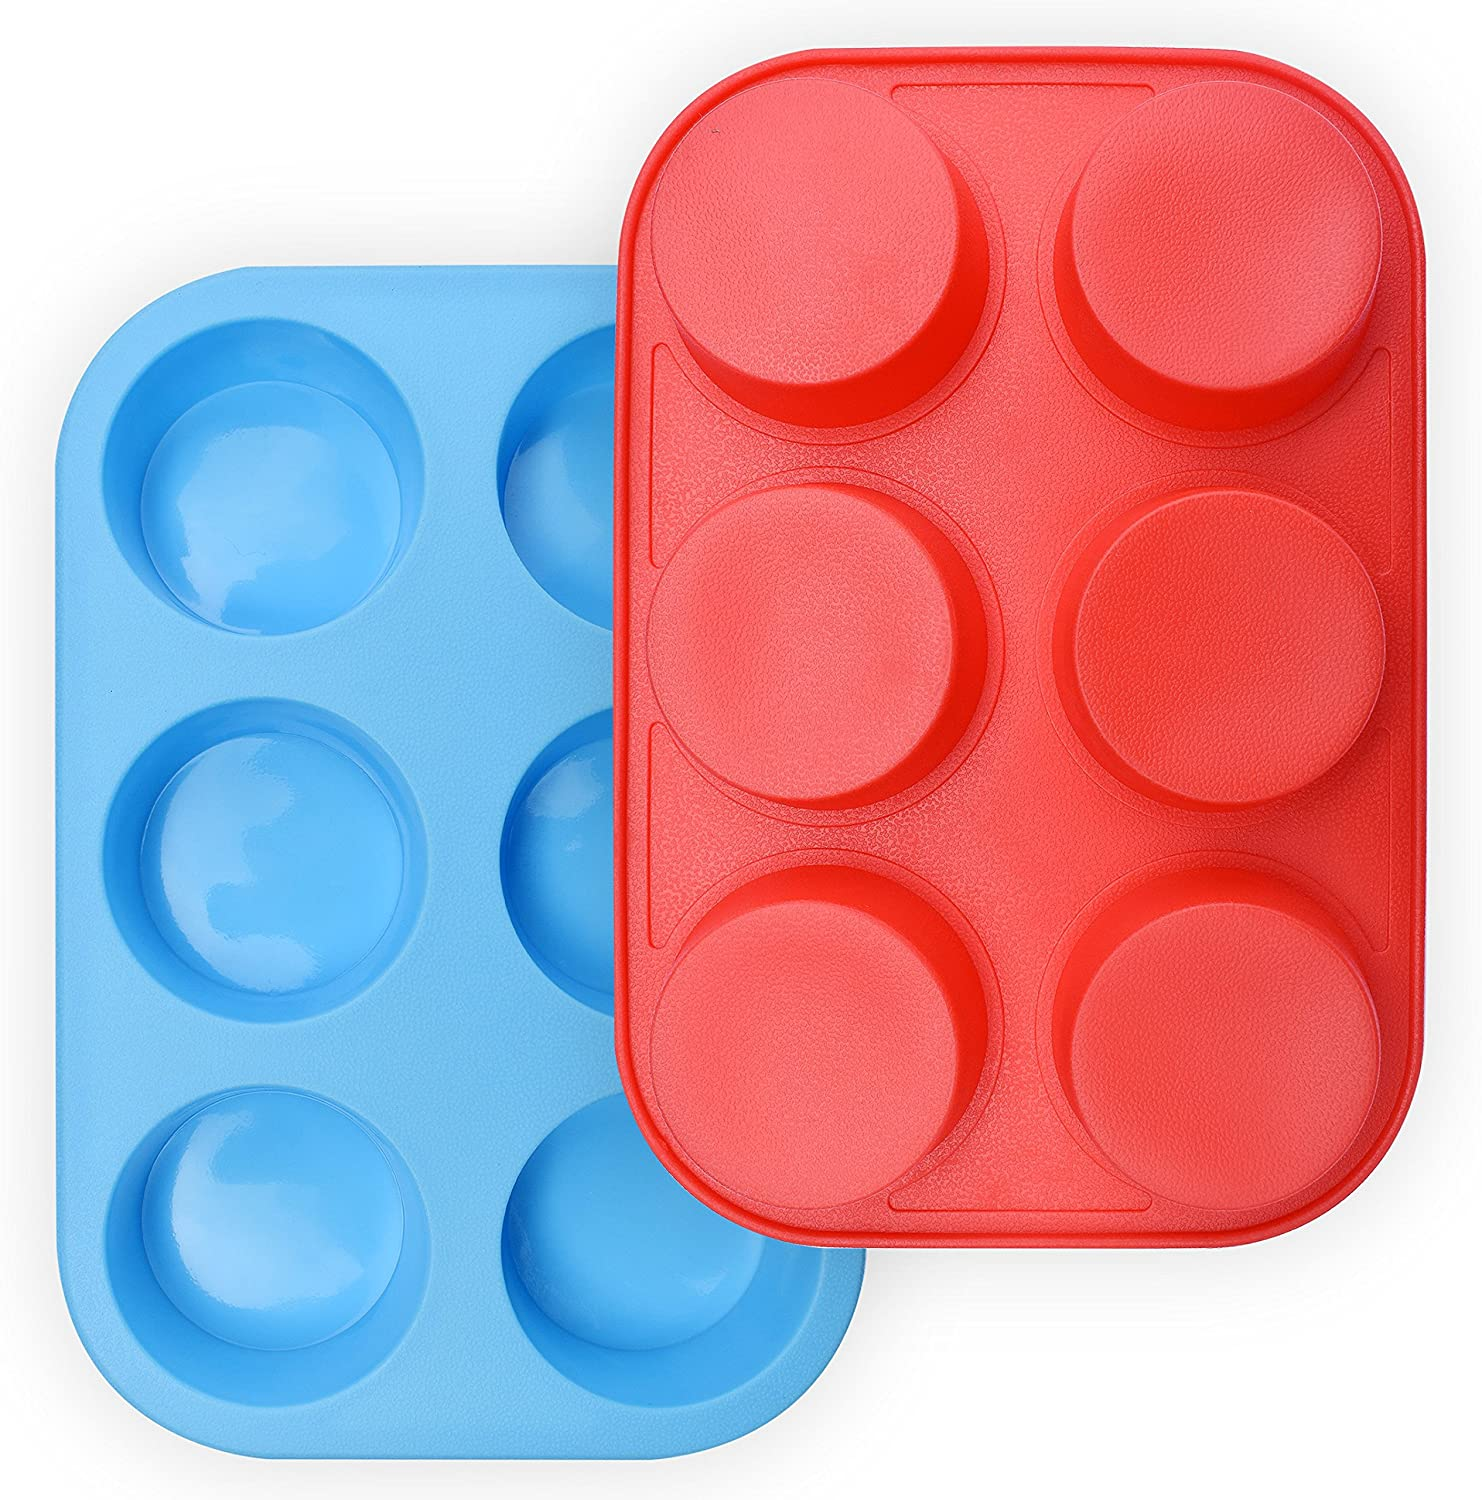 homEdge 6-Cup Silicone Muffin Pan, Pack of 2 Non-Stick Muffin Cupcake Molds-Blue and Red